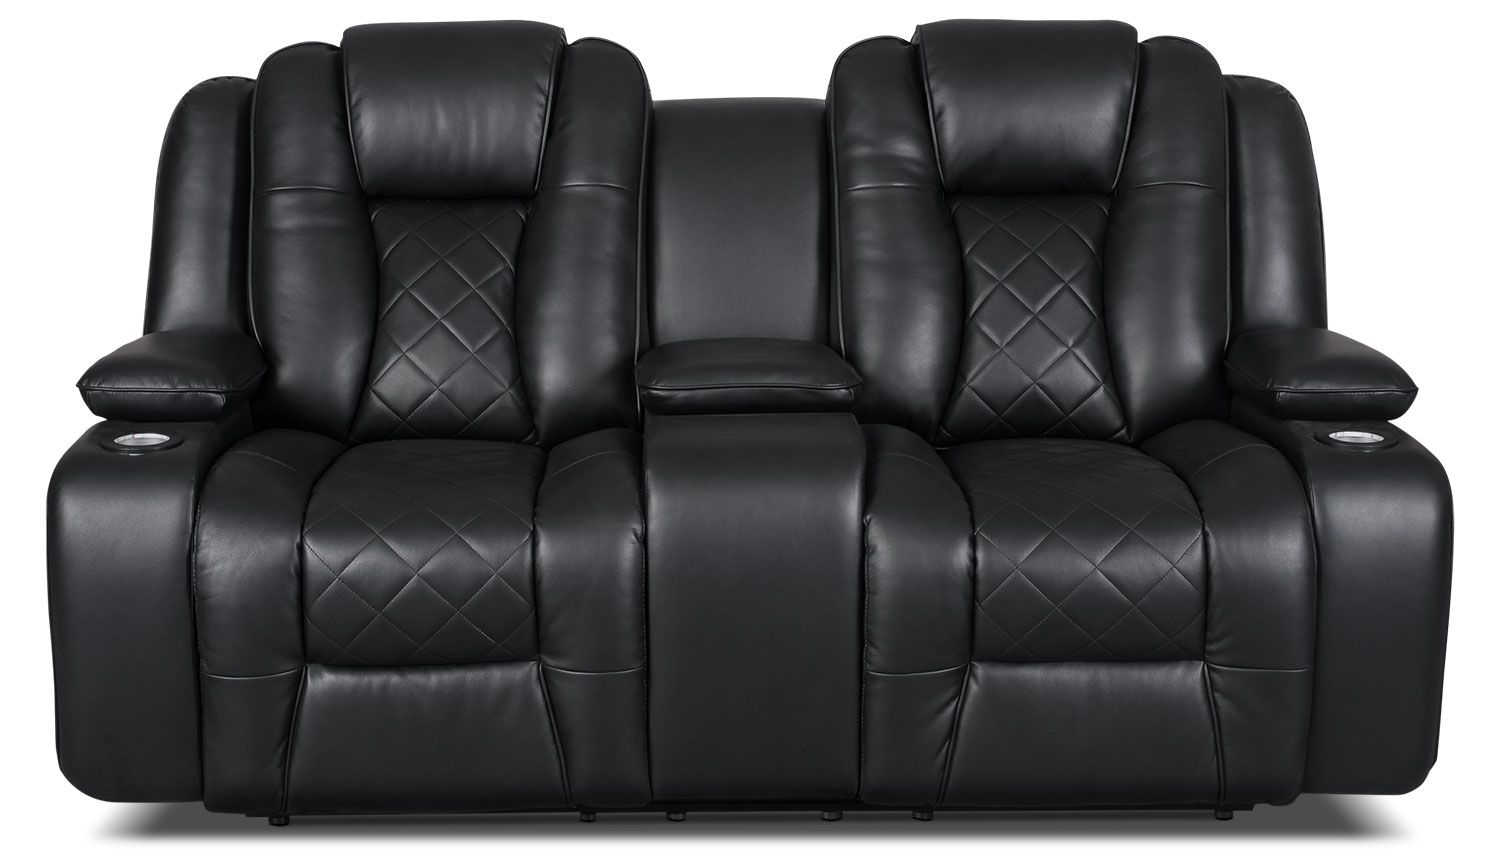 Swell Living Room Furniture Lonzo Leather Look Fabric Power Spiritservingveterans Wood Chair Design Ideas Spiritservingveteransorg